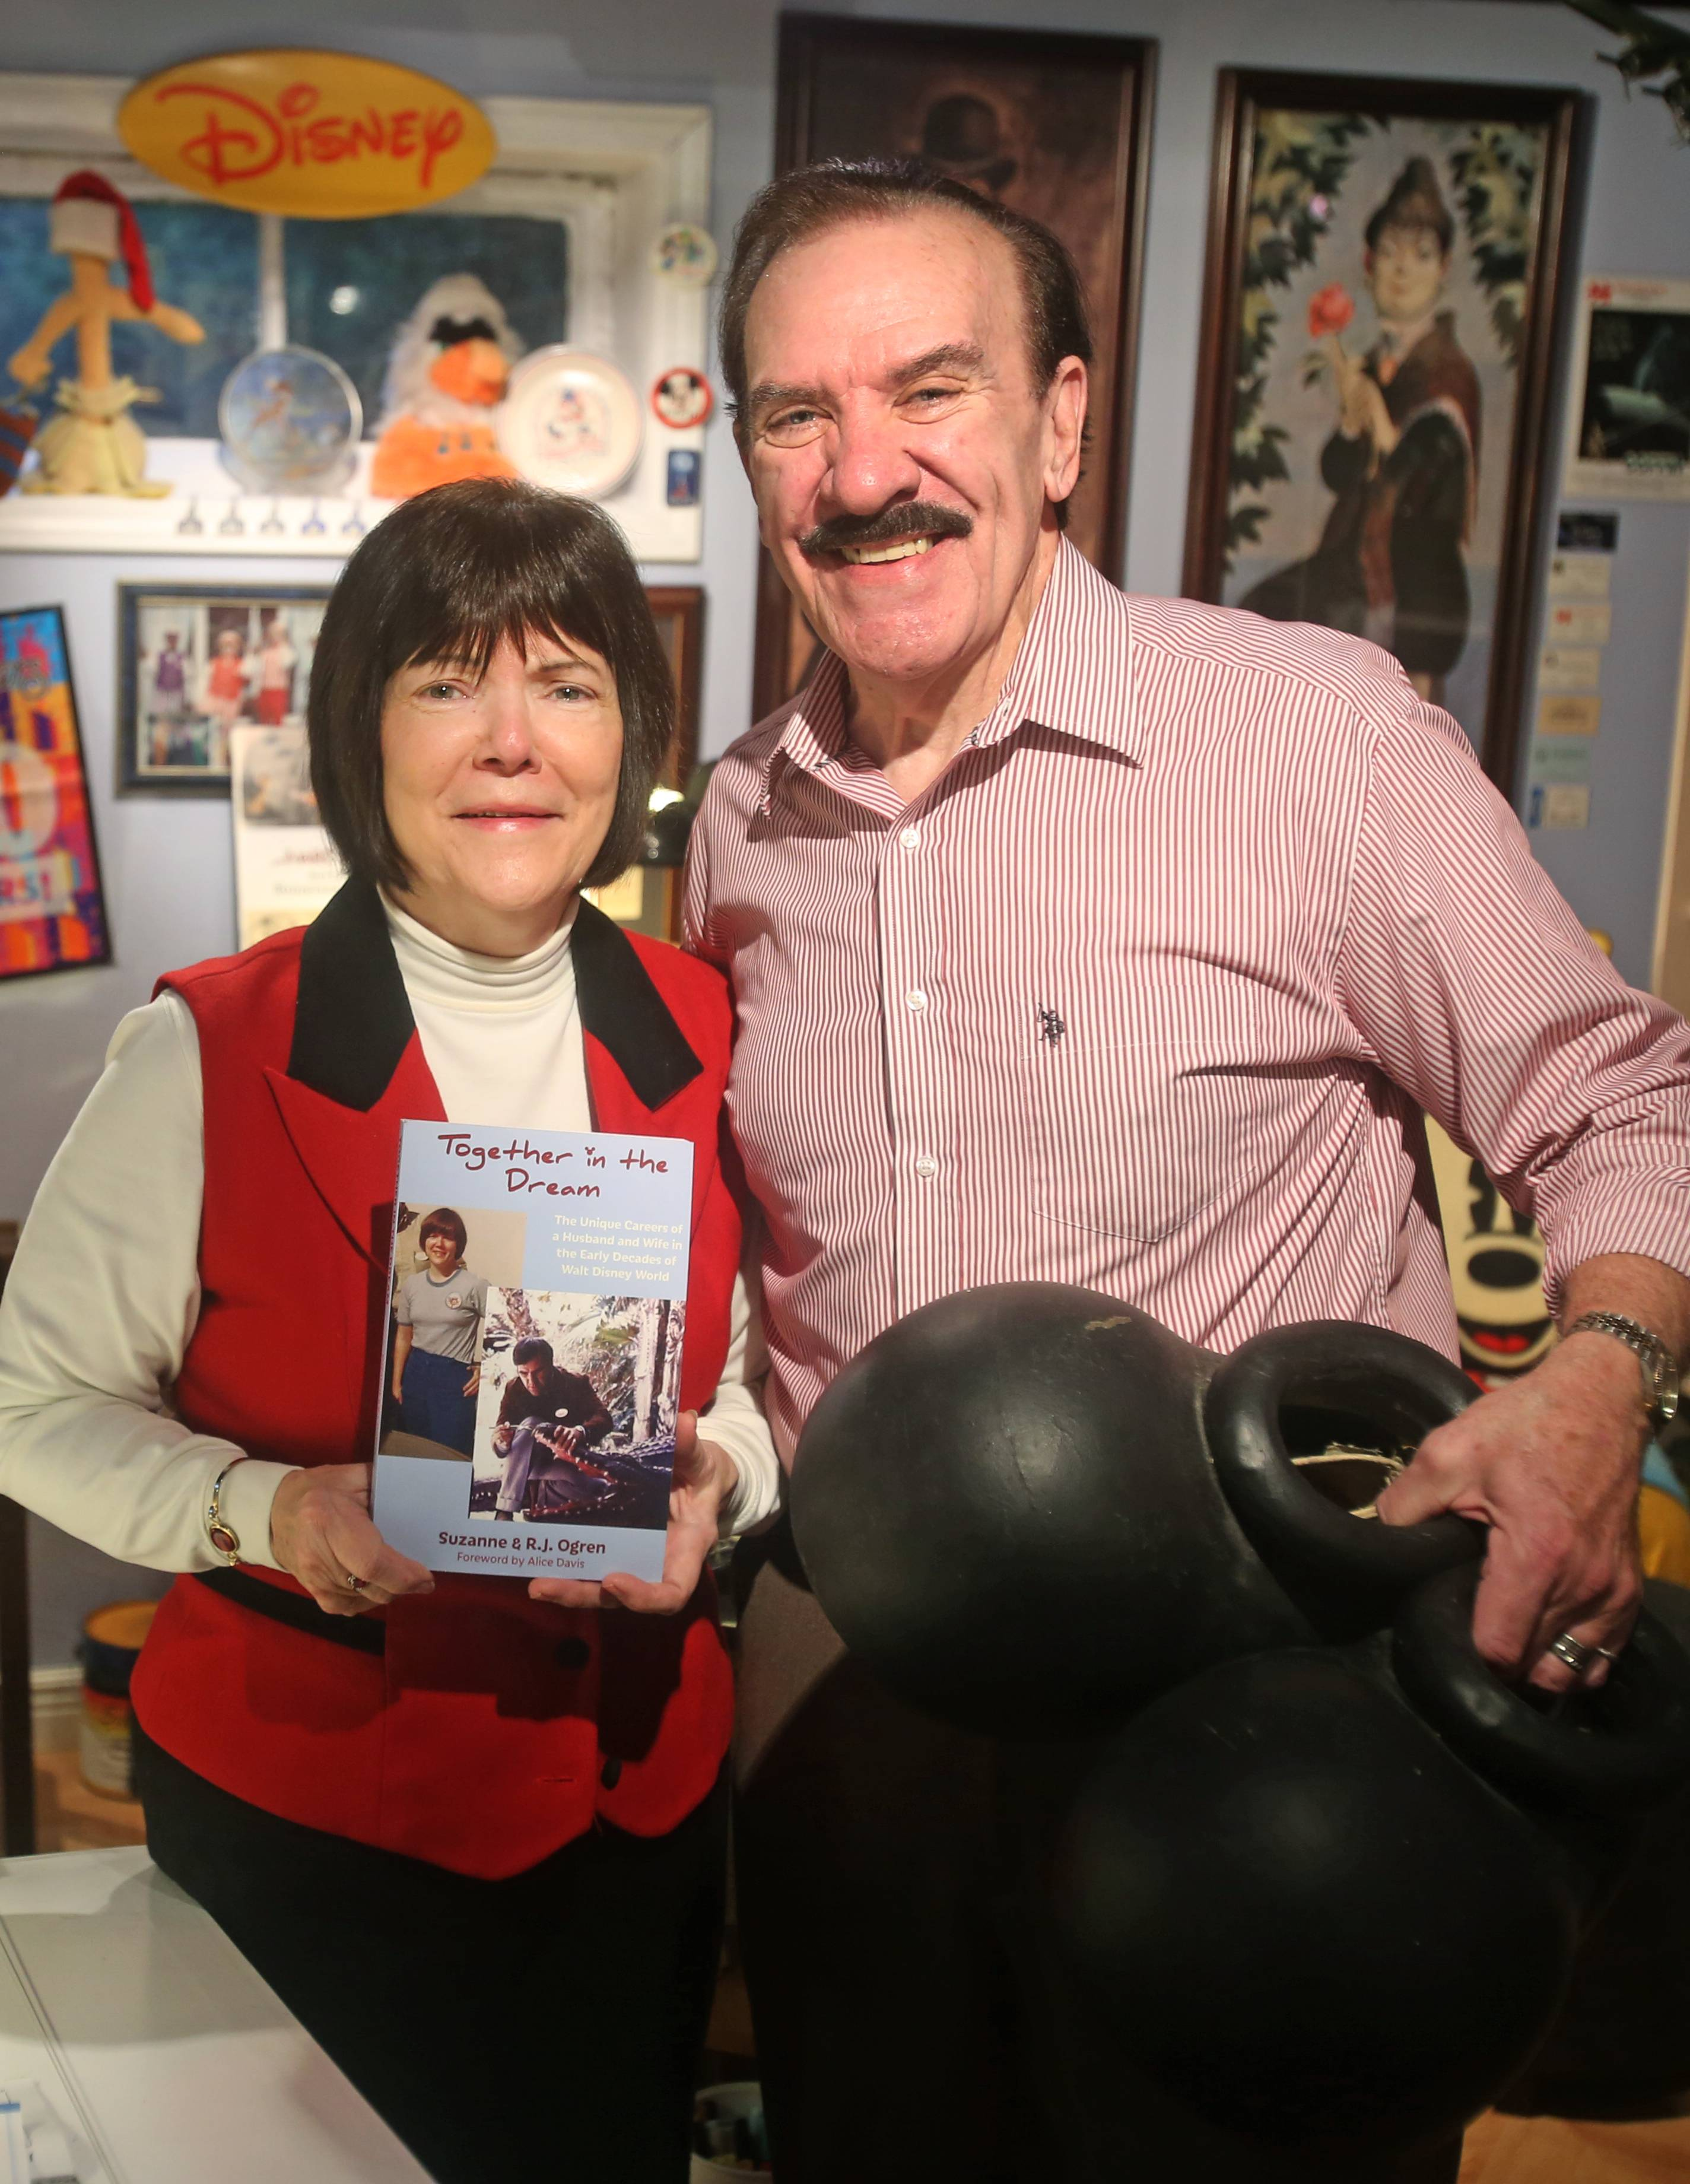 "Suzanne and RJ Ogren of Naperville share stories of working at Walt Disney World in the 1970s in their new book ""Together in the Dream."" The couple also has collected much Disney memorabilia, including the 1979 Mickey Mouse shoes RJ holds, which weigh several pounds each."